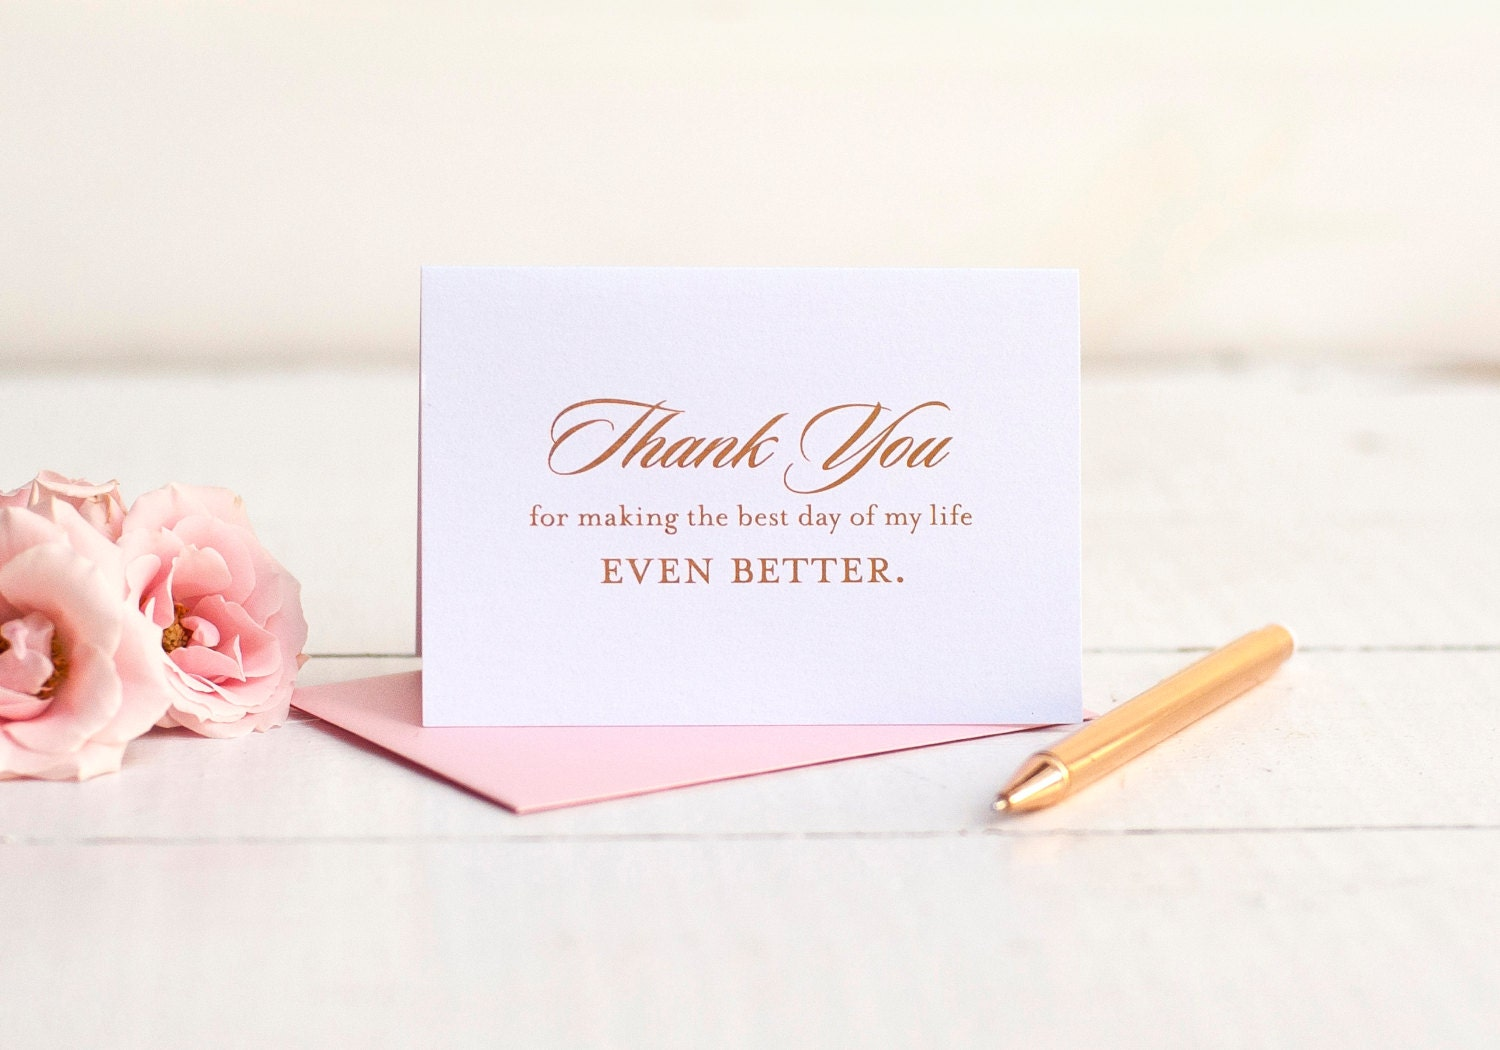 Thank You Message Wedding Gift: Wedding Thank You Card With Rose Gold Foil Wedding Note Cards